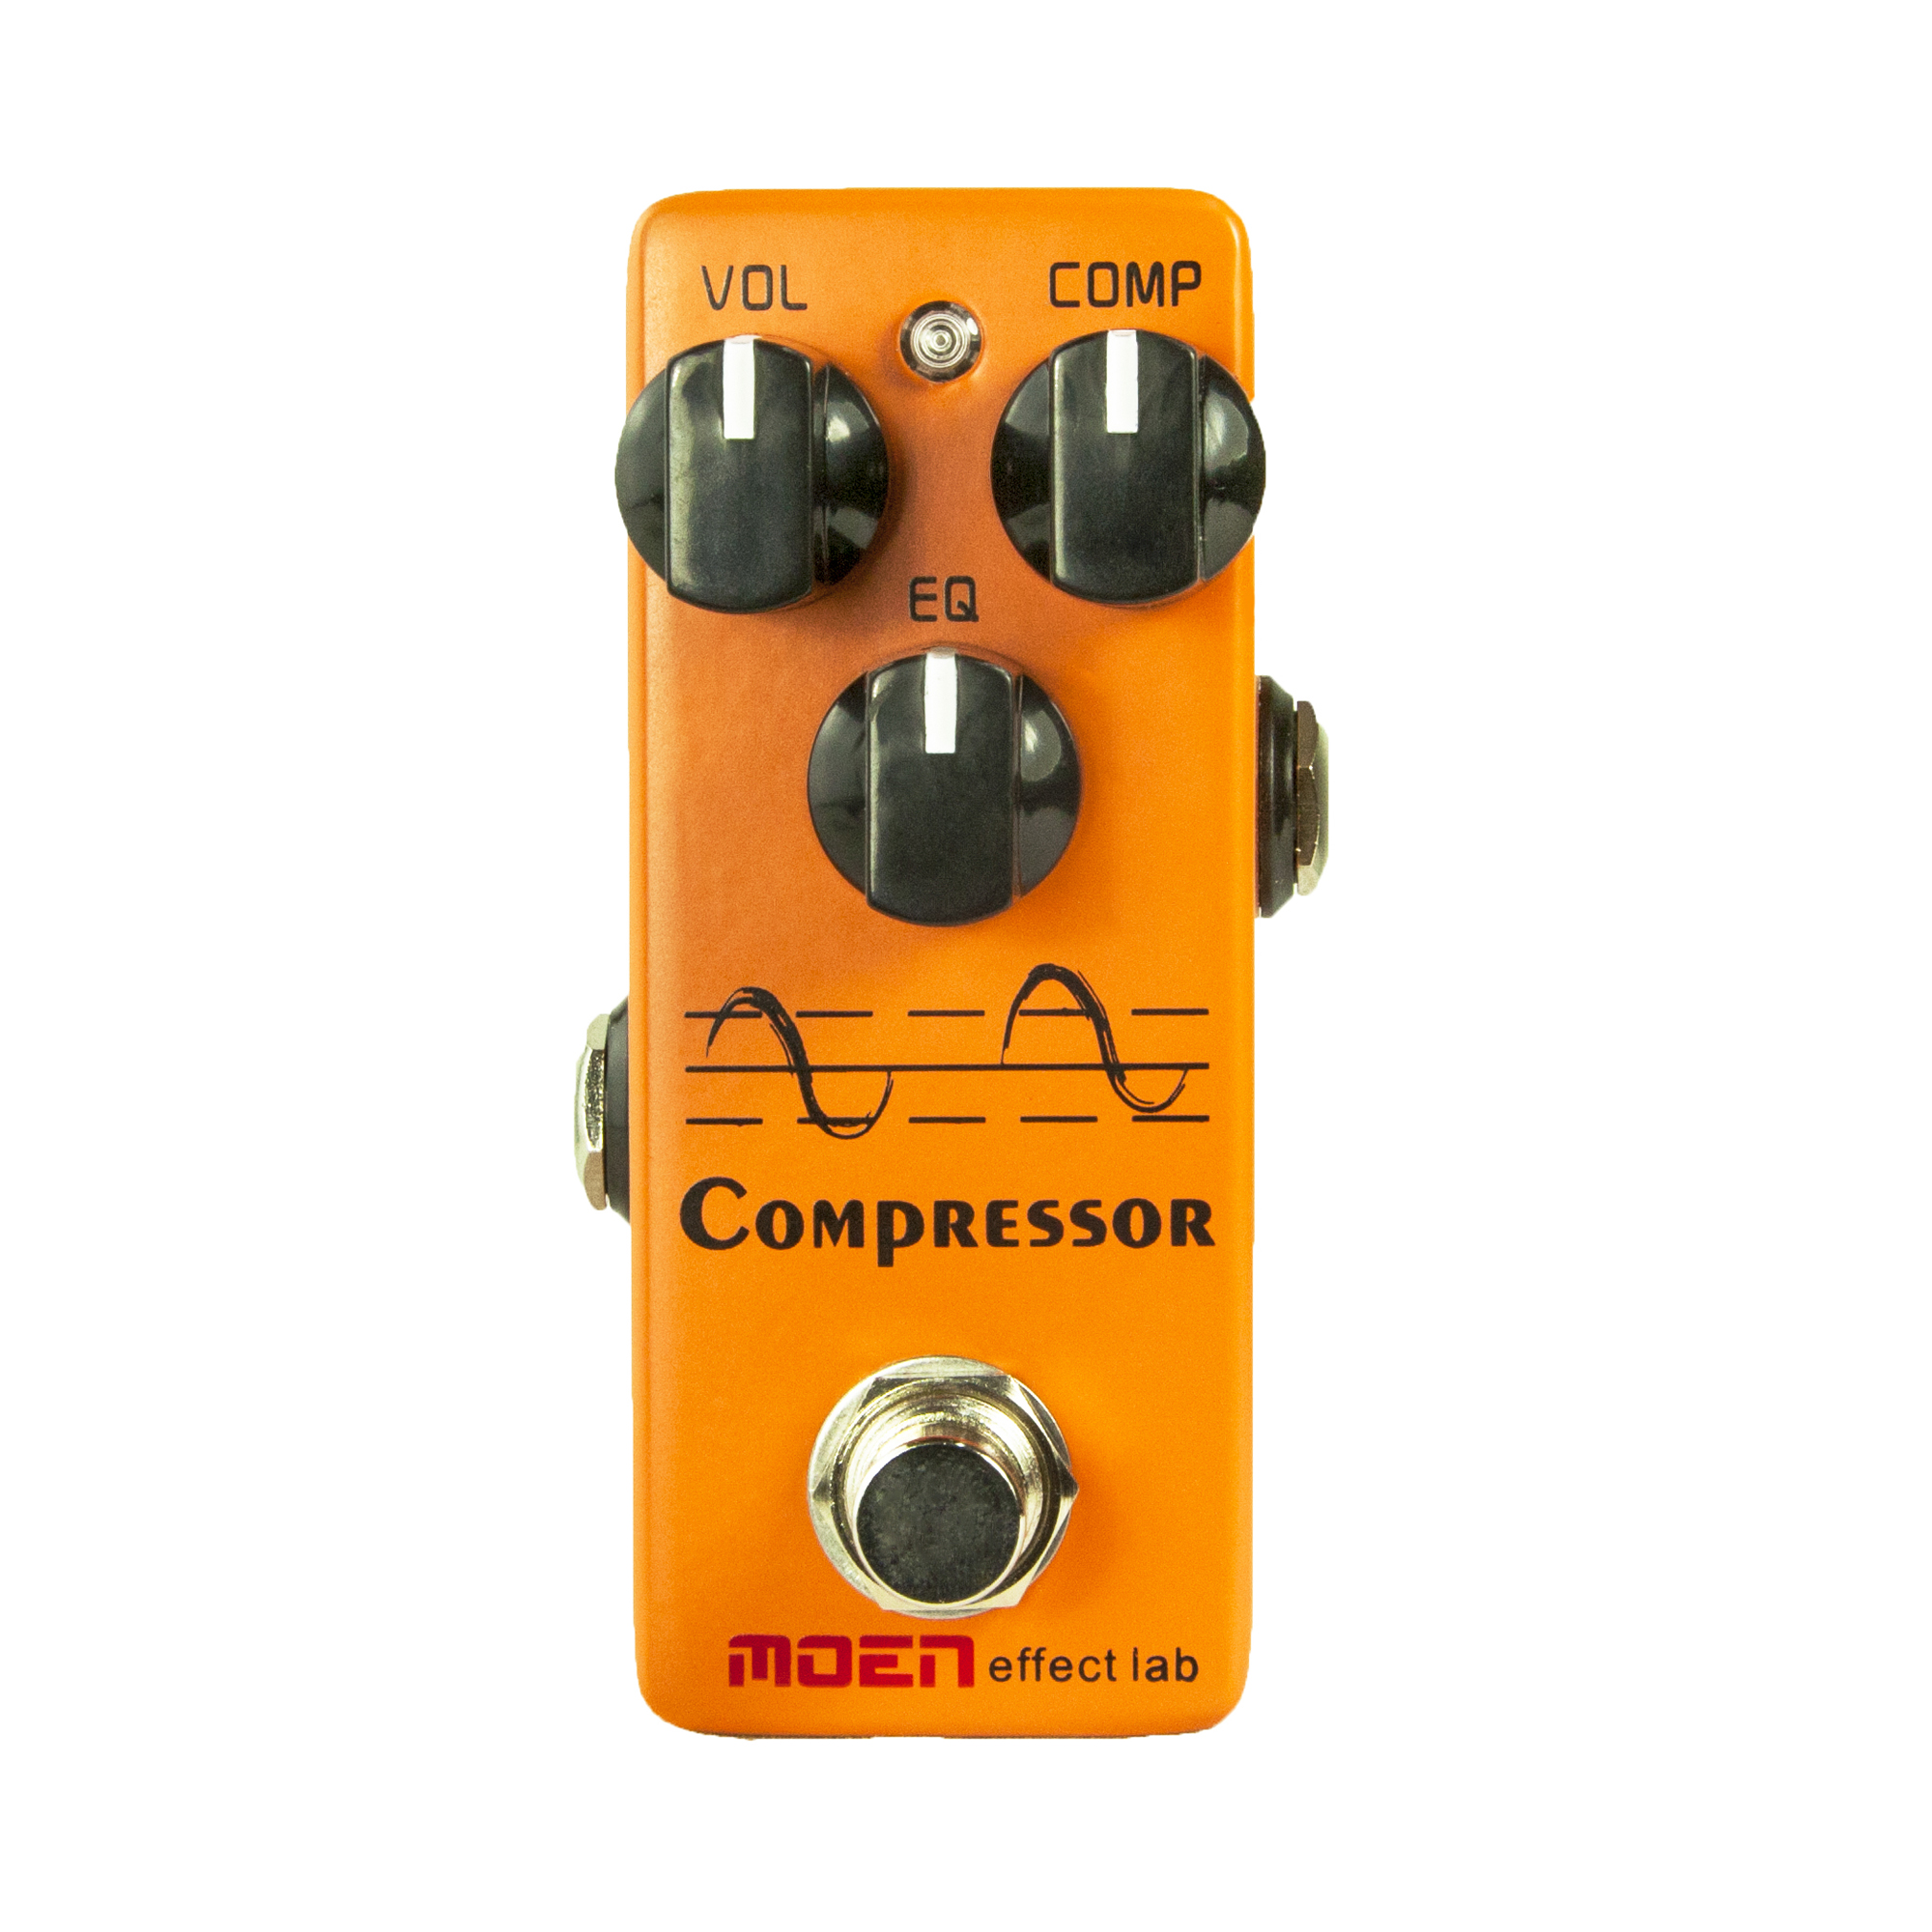 Moen Compressor Guitar Effect Pedal Vol Comp EQ Controls Ture Bypass Stompbox for Electric Guitar italy baroni lab dave s comp compressor guitar effect pedal stompbox true bypass